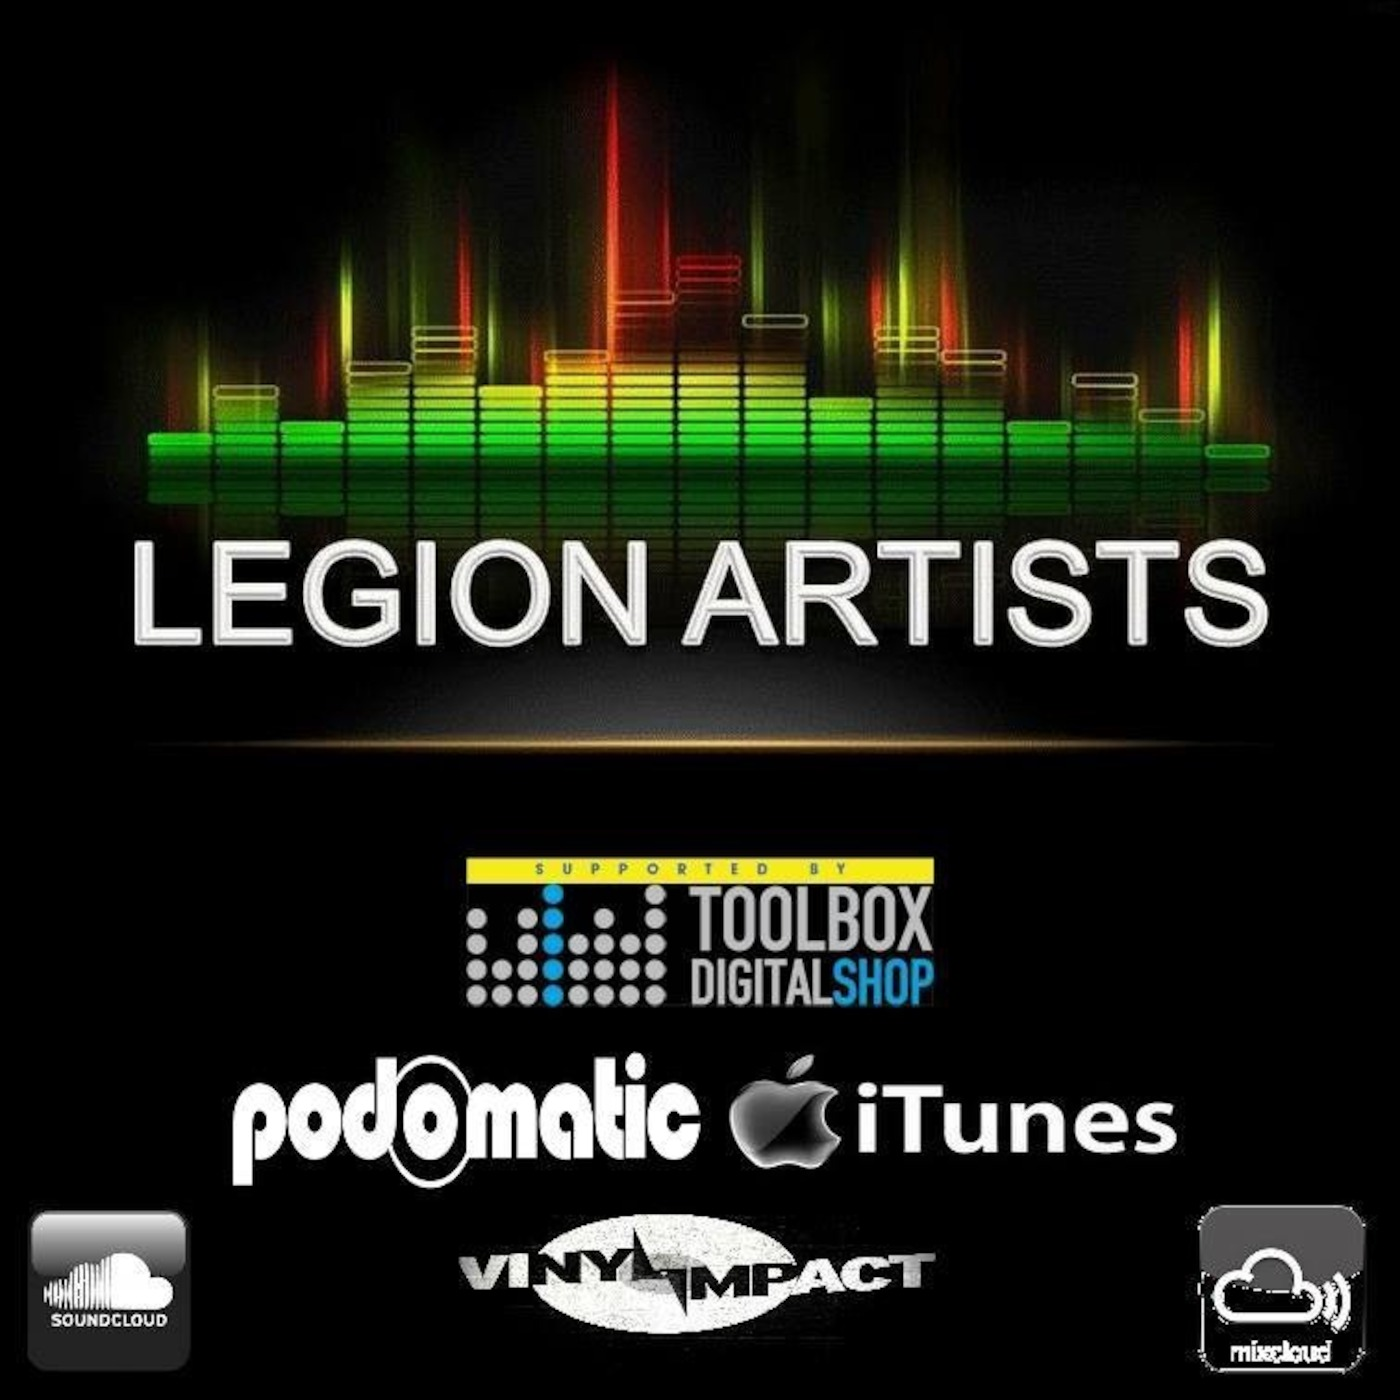 LegionArtists PodCast